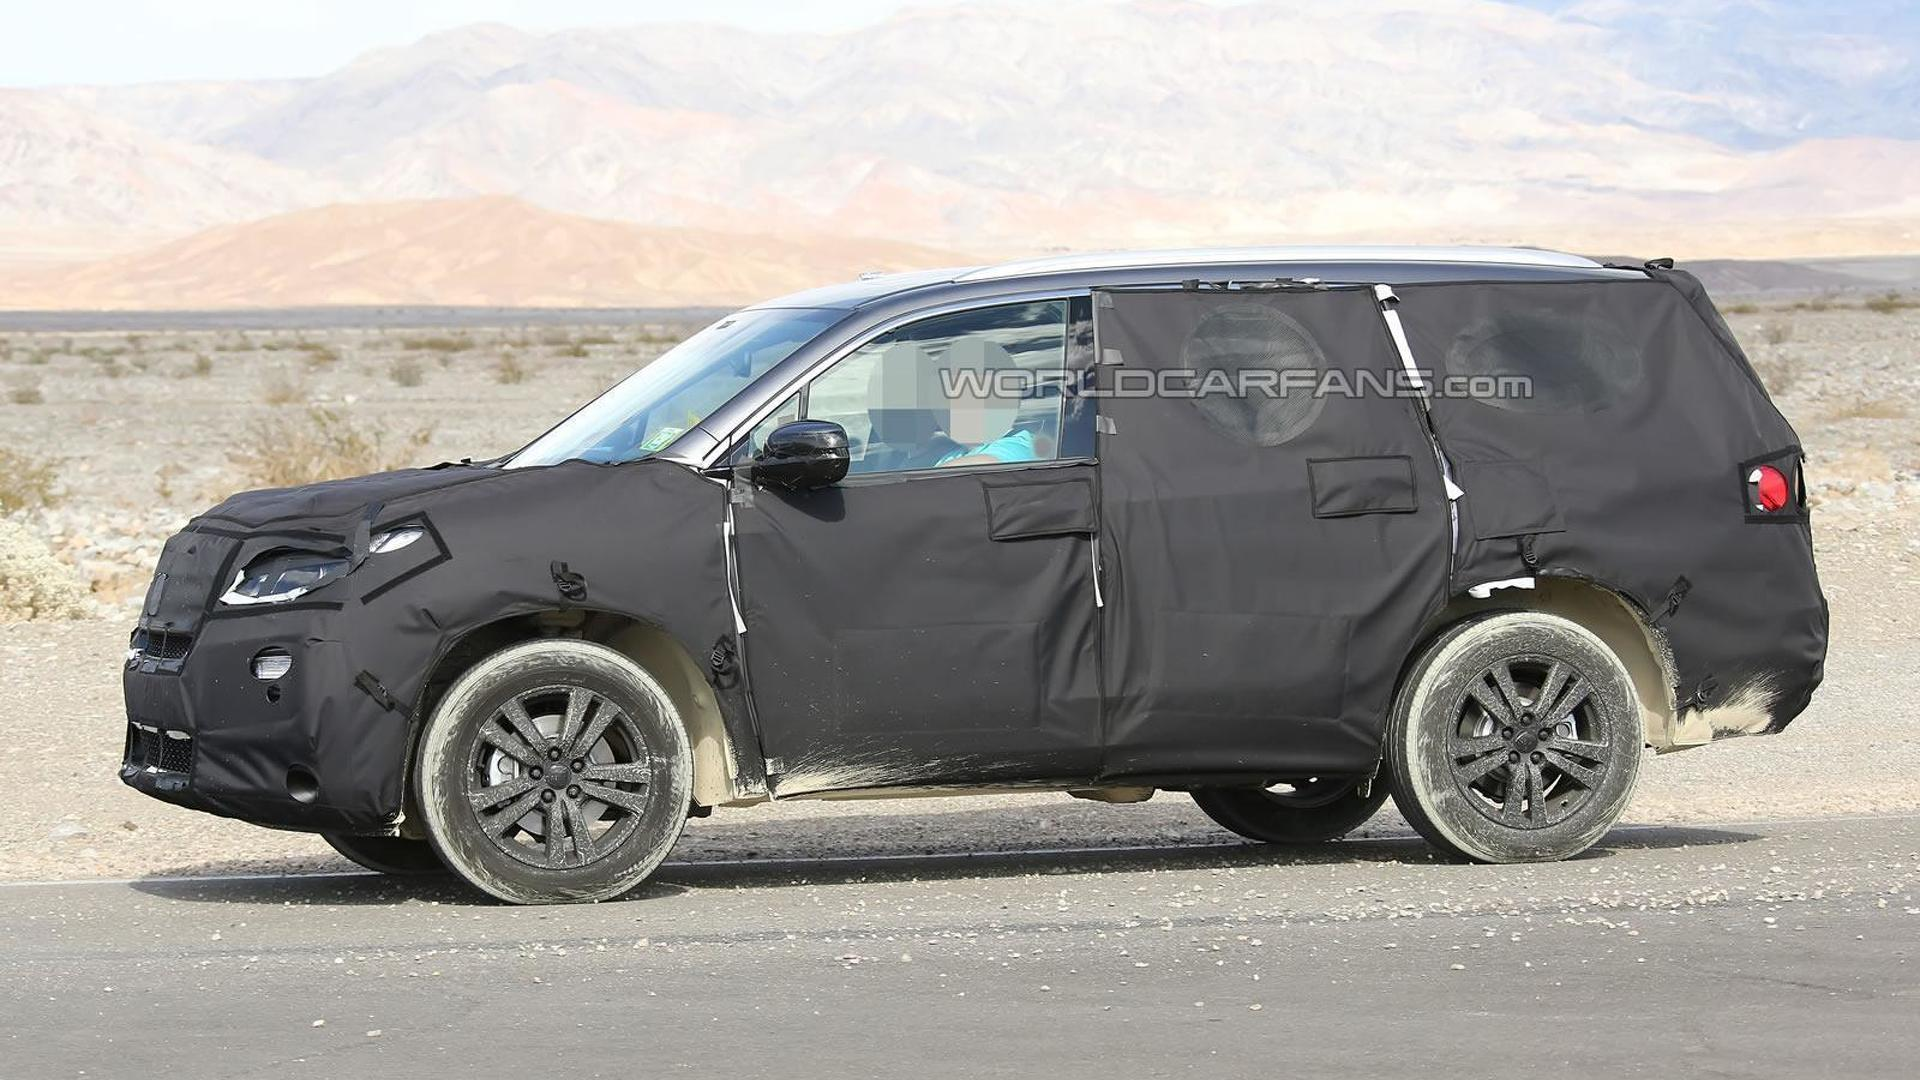 Redesigned Honda Pilot confirmed for this summer, new Ridgeline coming in 2016